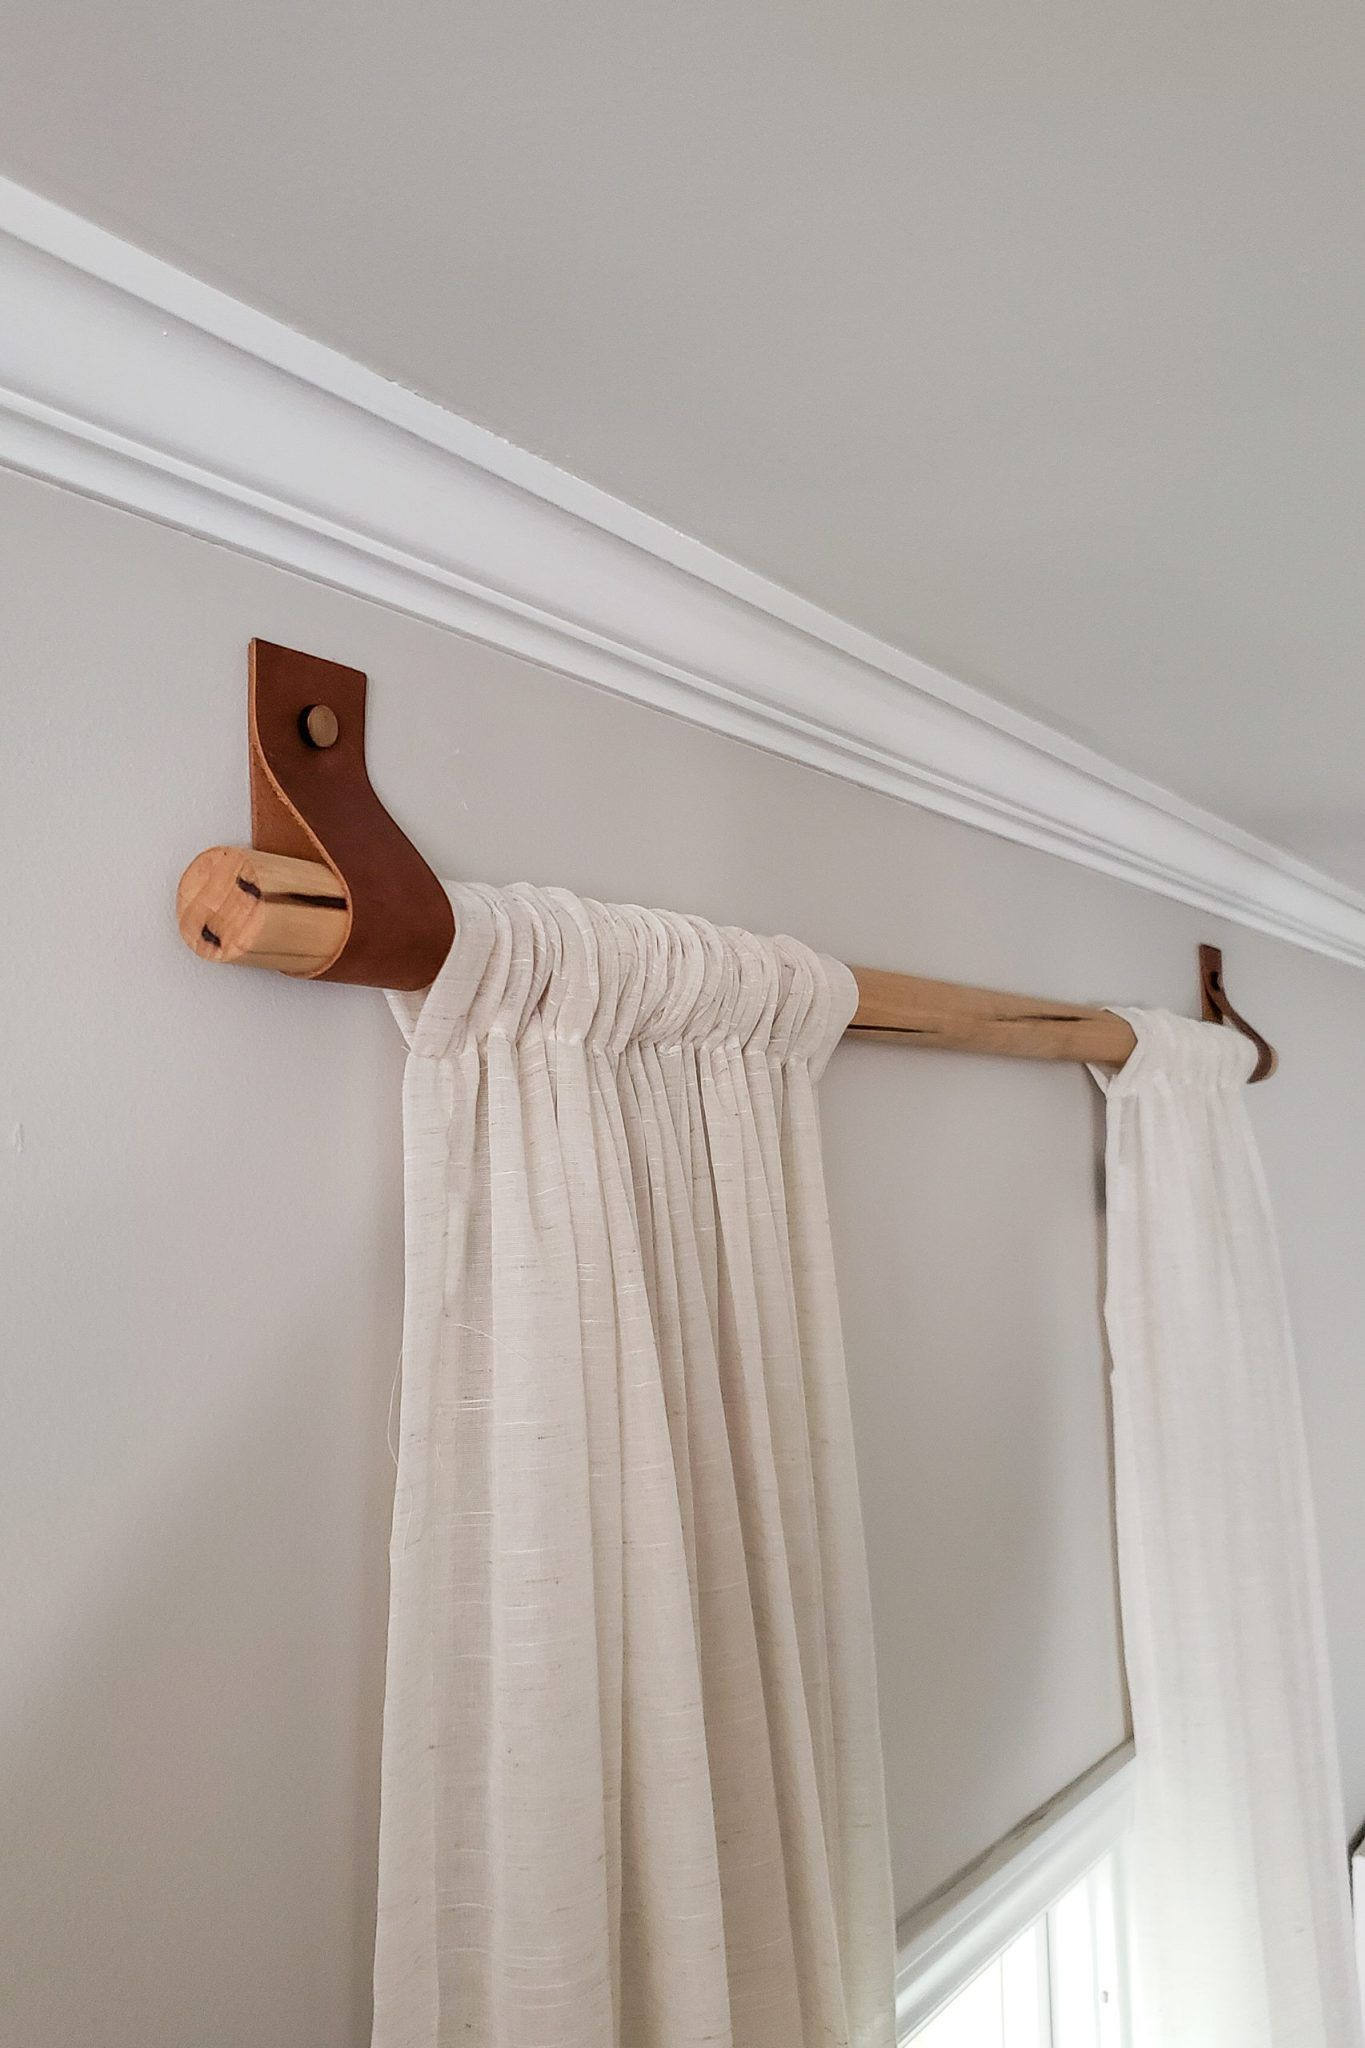 Diy Wood Curtain Rods With Leather Straps For Under 10 Dani Koch Wood Curtain Rods Wood Curtain Diy Curtain Rods